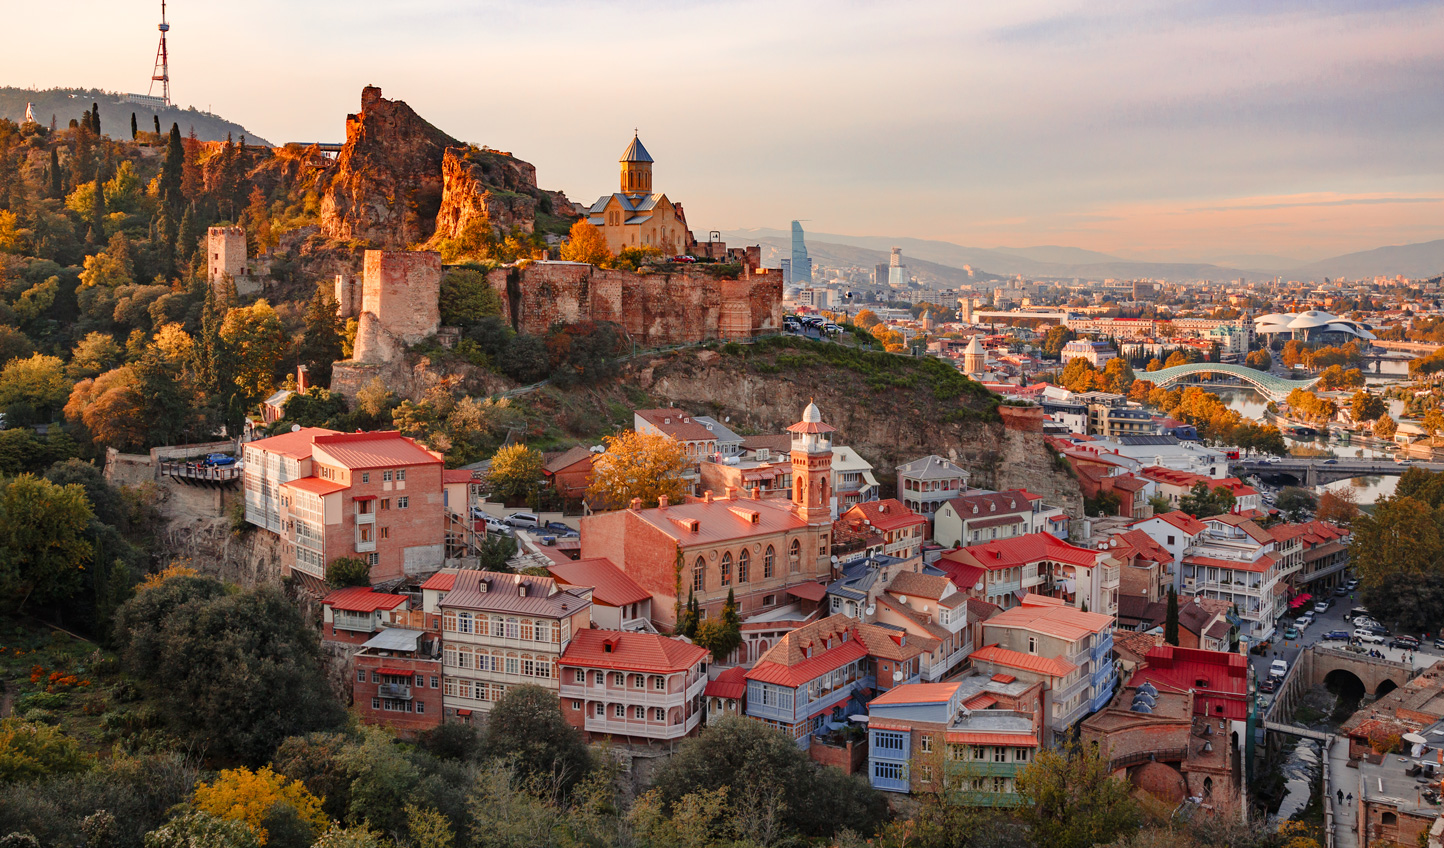 Dusk settles over Tbilisi's Old Town to give it an ethereal glow